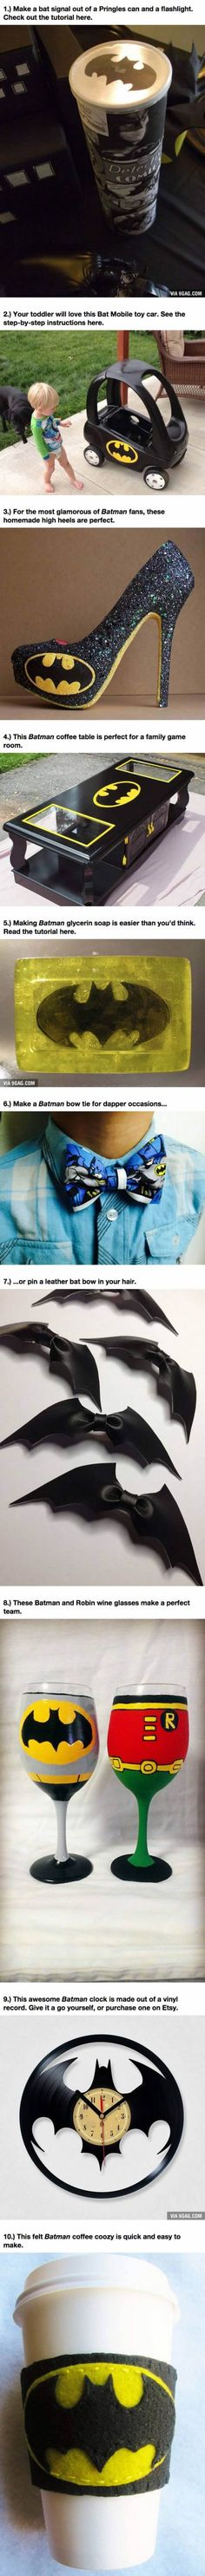 Check Out These 10 Geeky DIY Projects For Any Batman Obsessed Fan